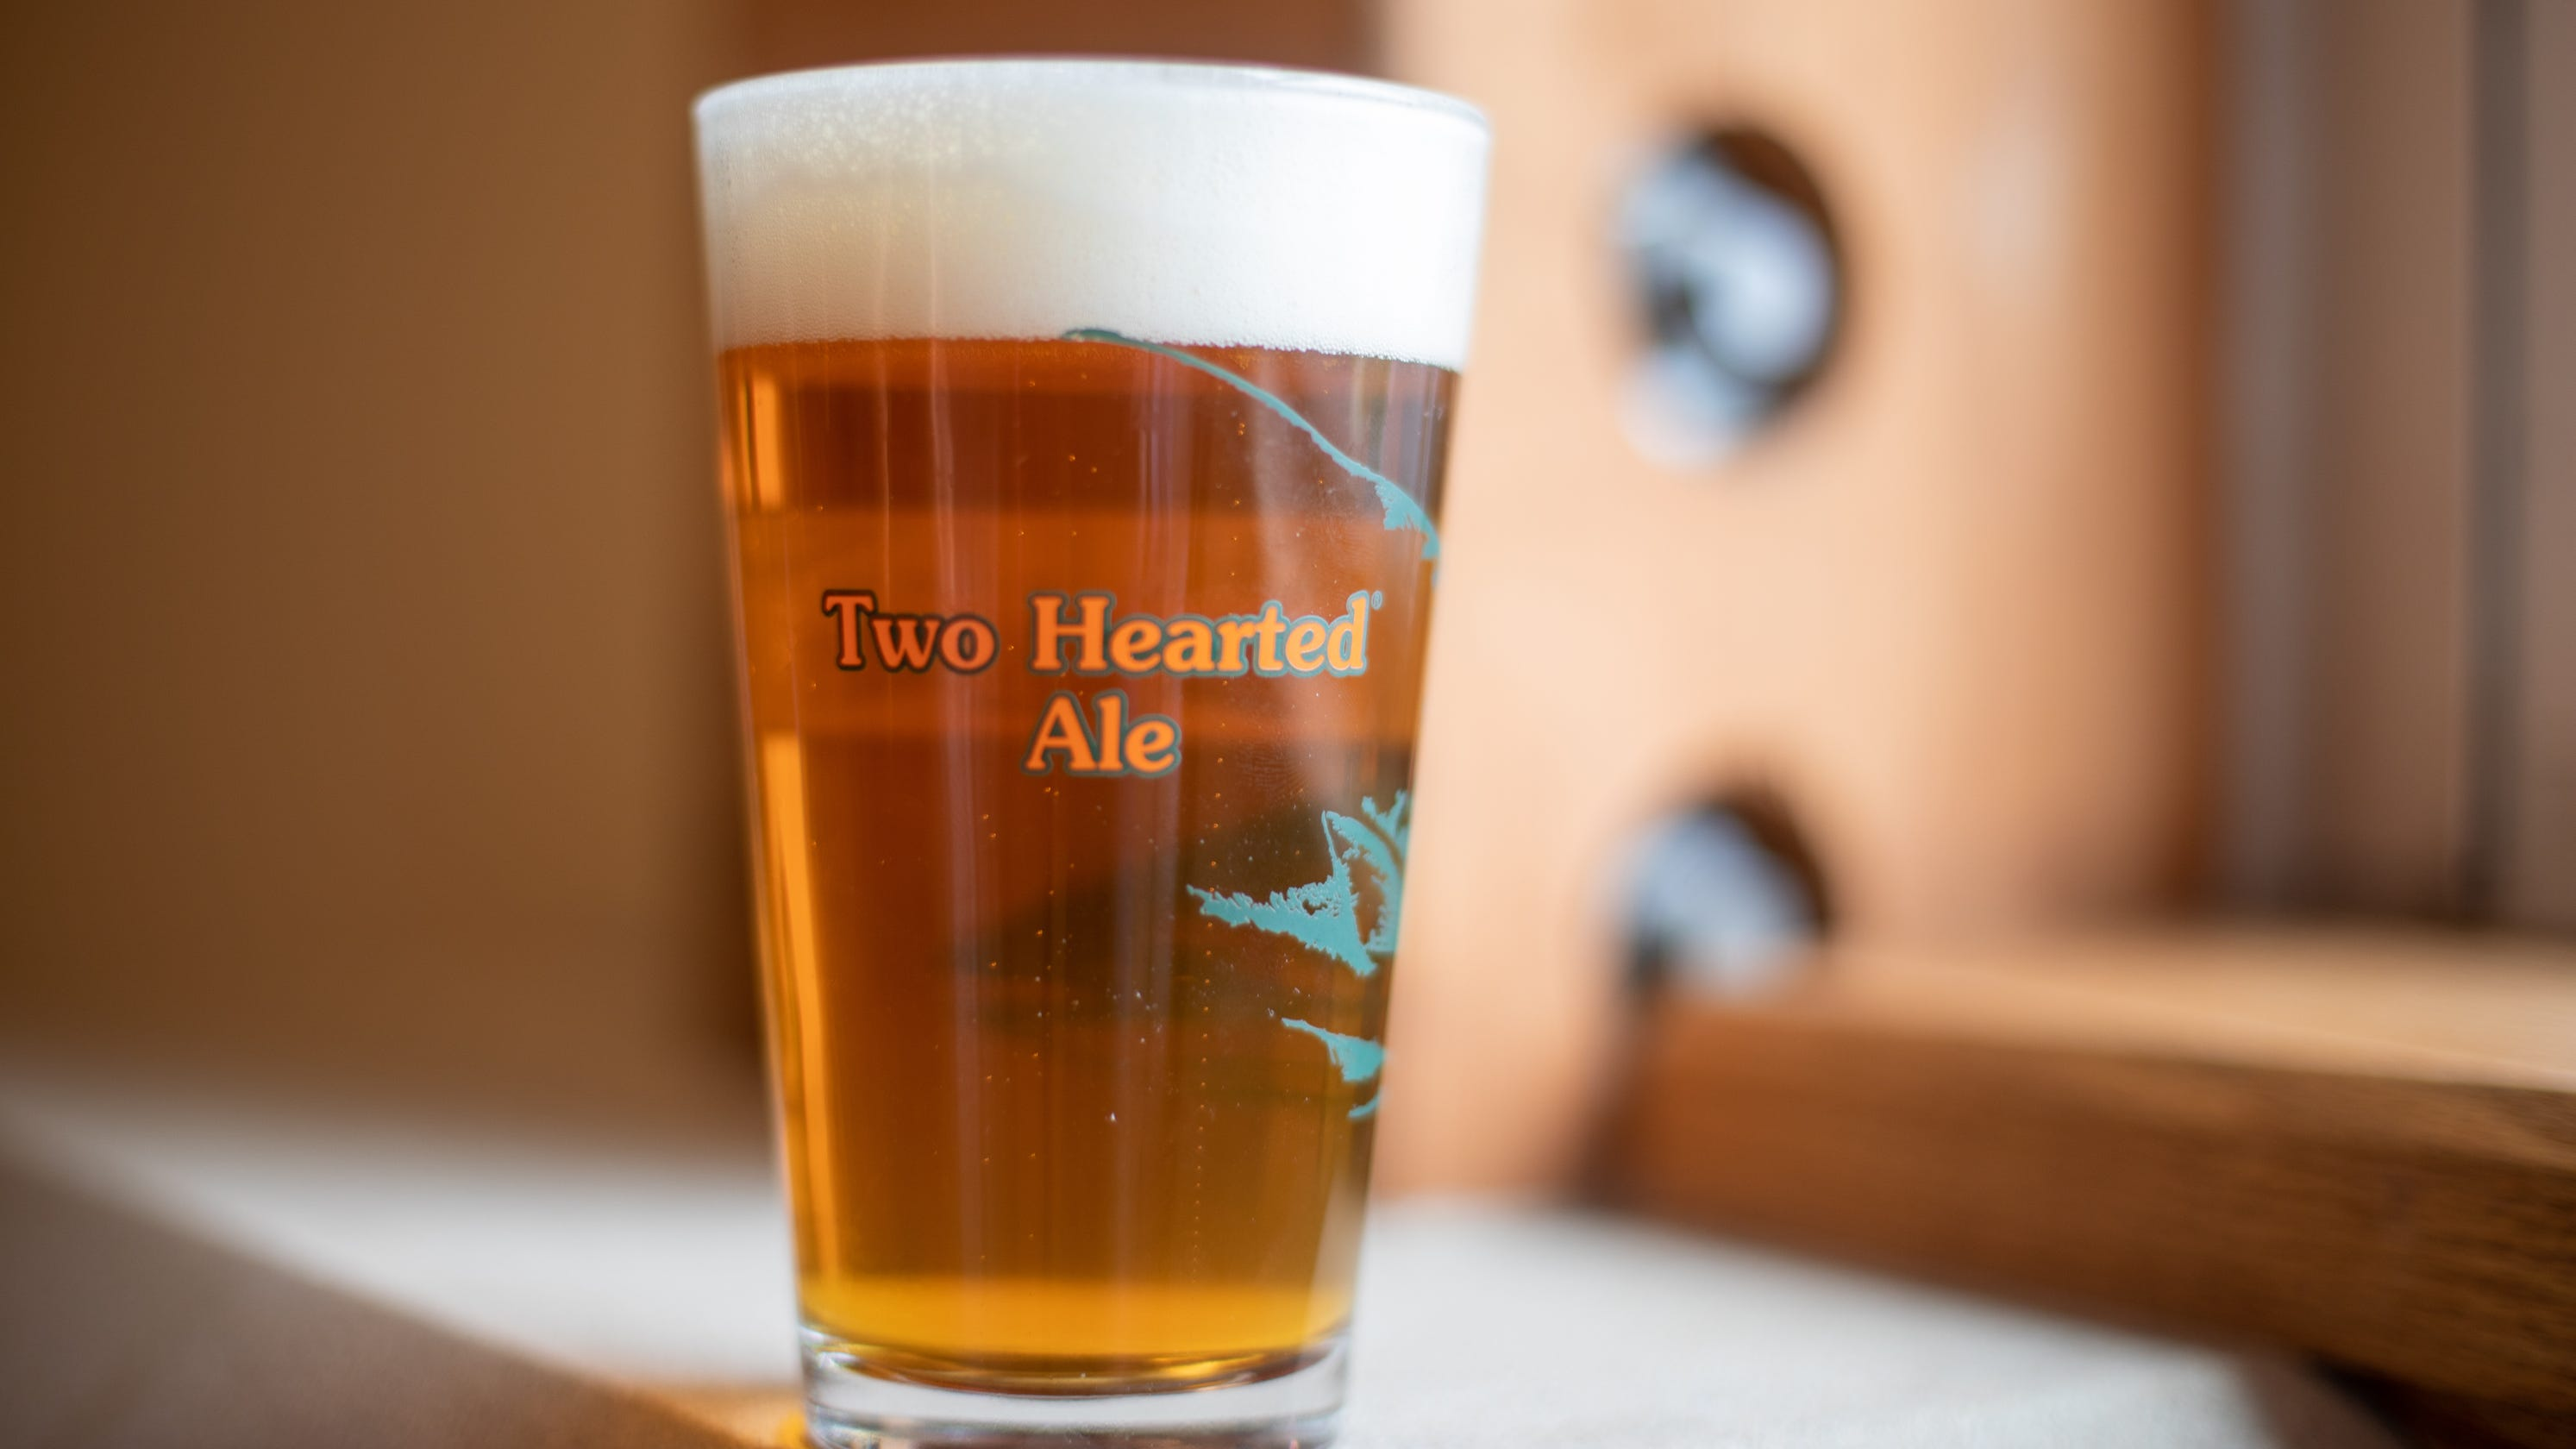 Best Beers 2020 Bell's Brewery plans low calorie version of Two Hearted Ale in 2020